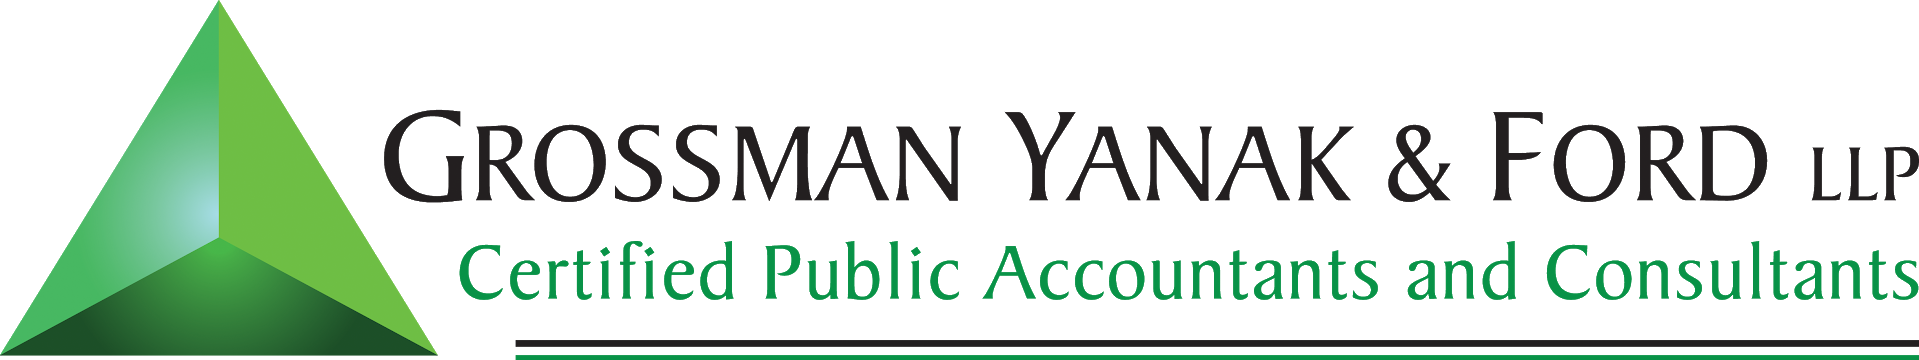 19. Grossman Yanak & Ford LLP (Route)